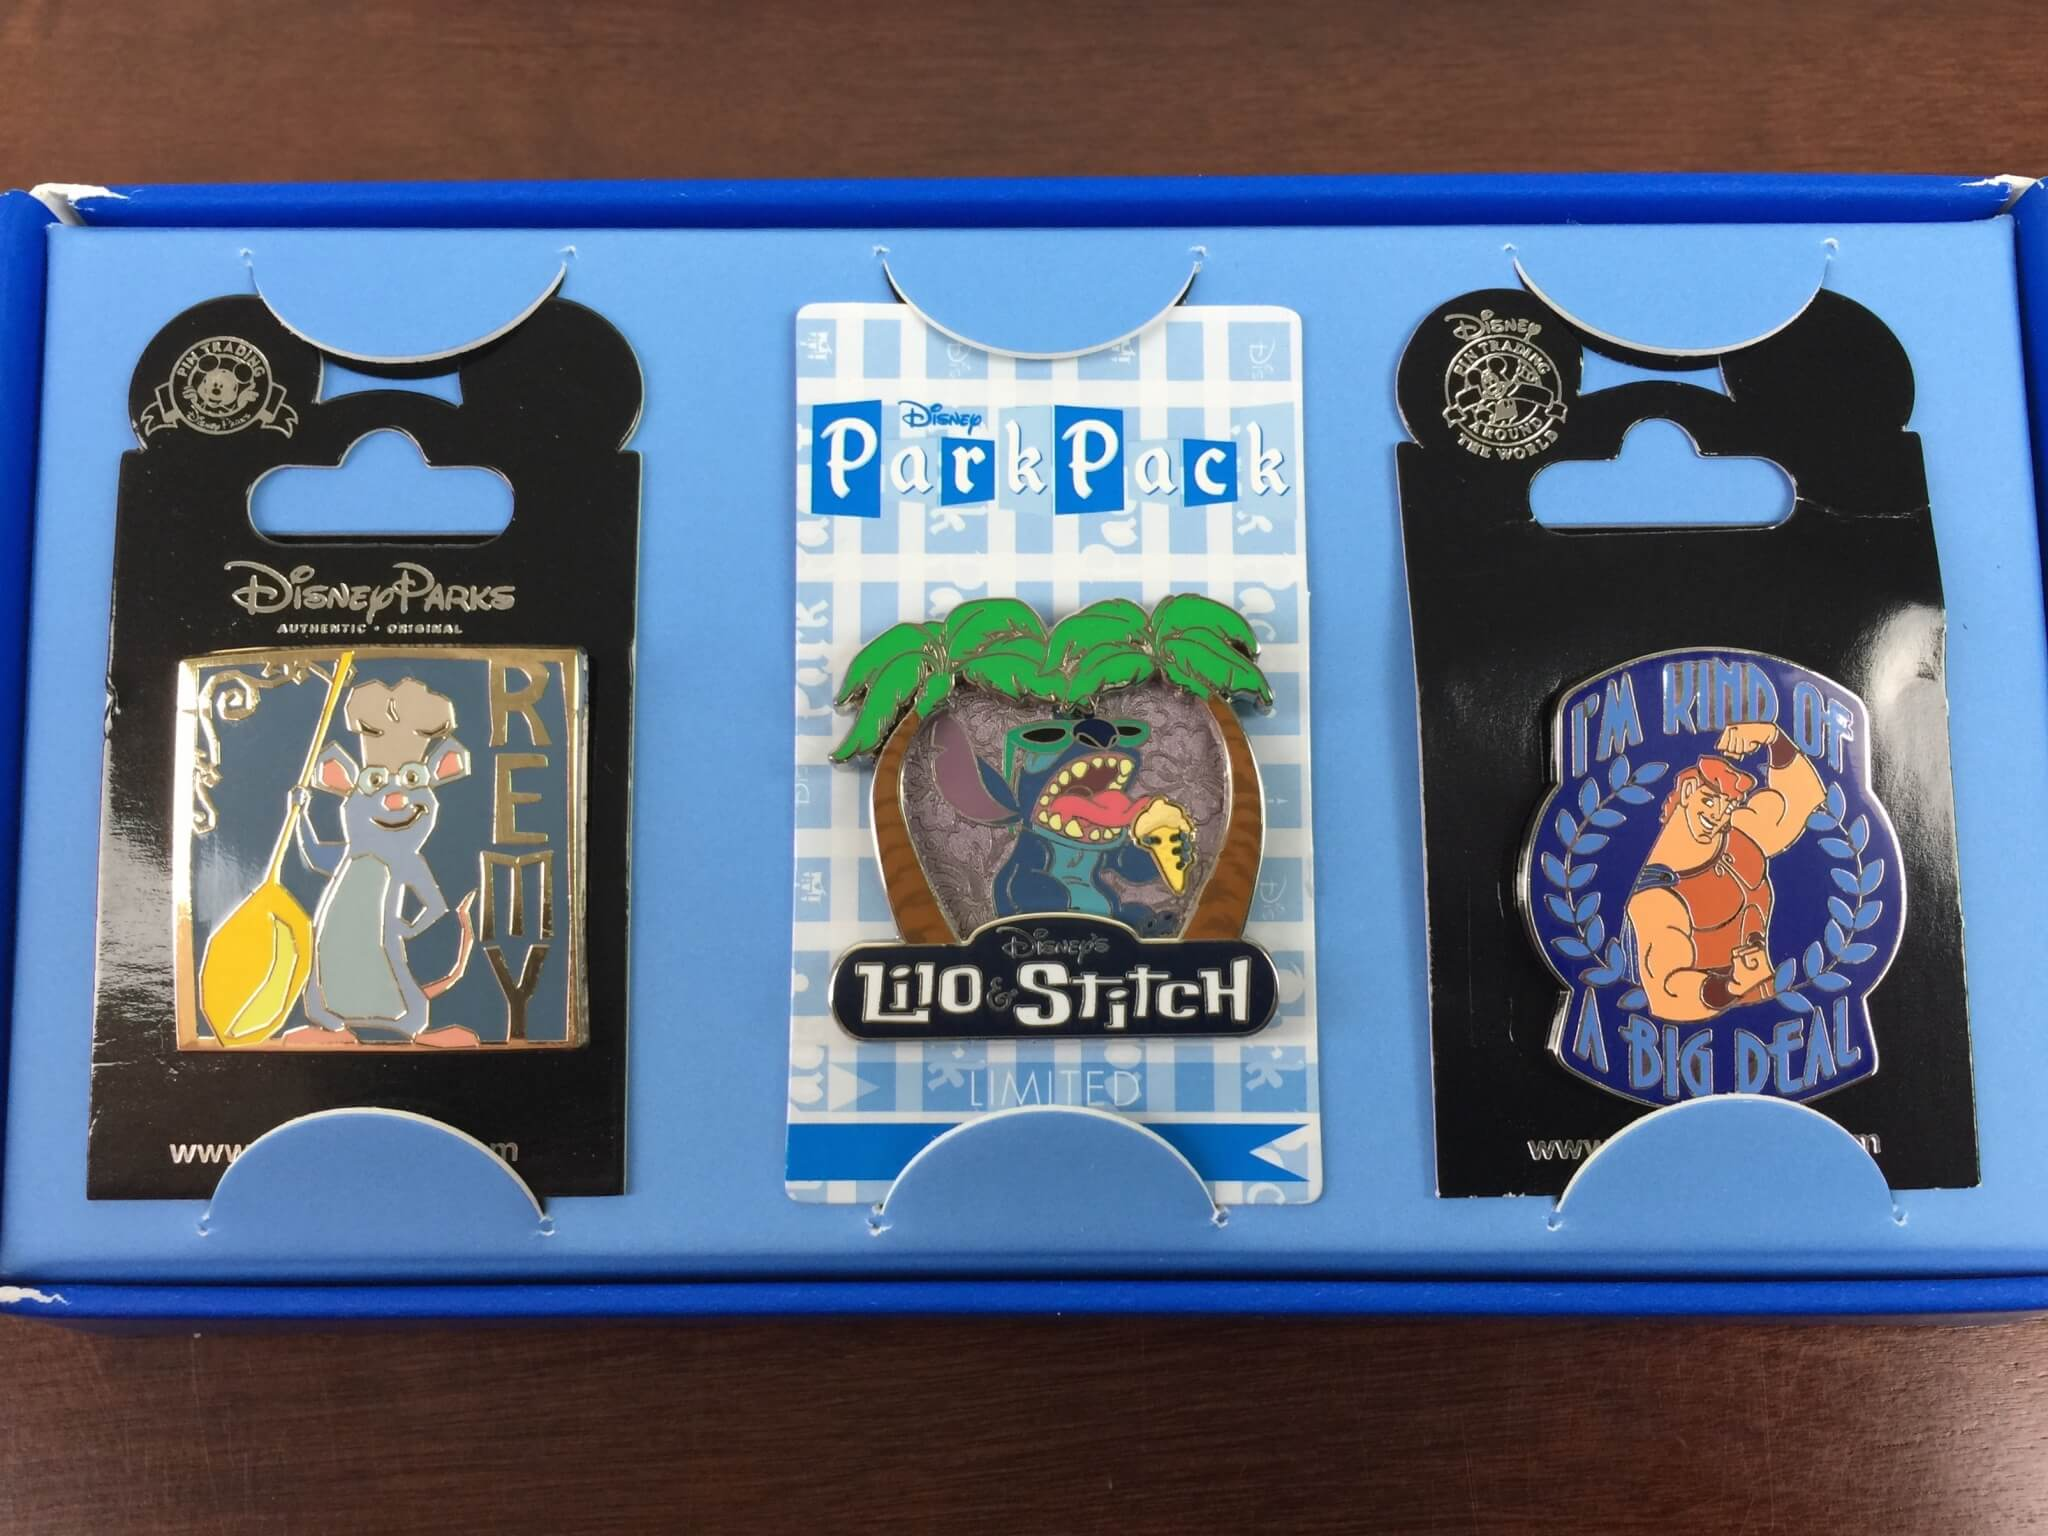 August 2015 Disney Park Pack: Pin Trading Edition Review